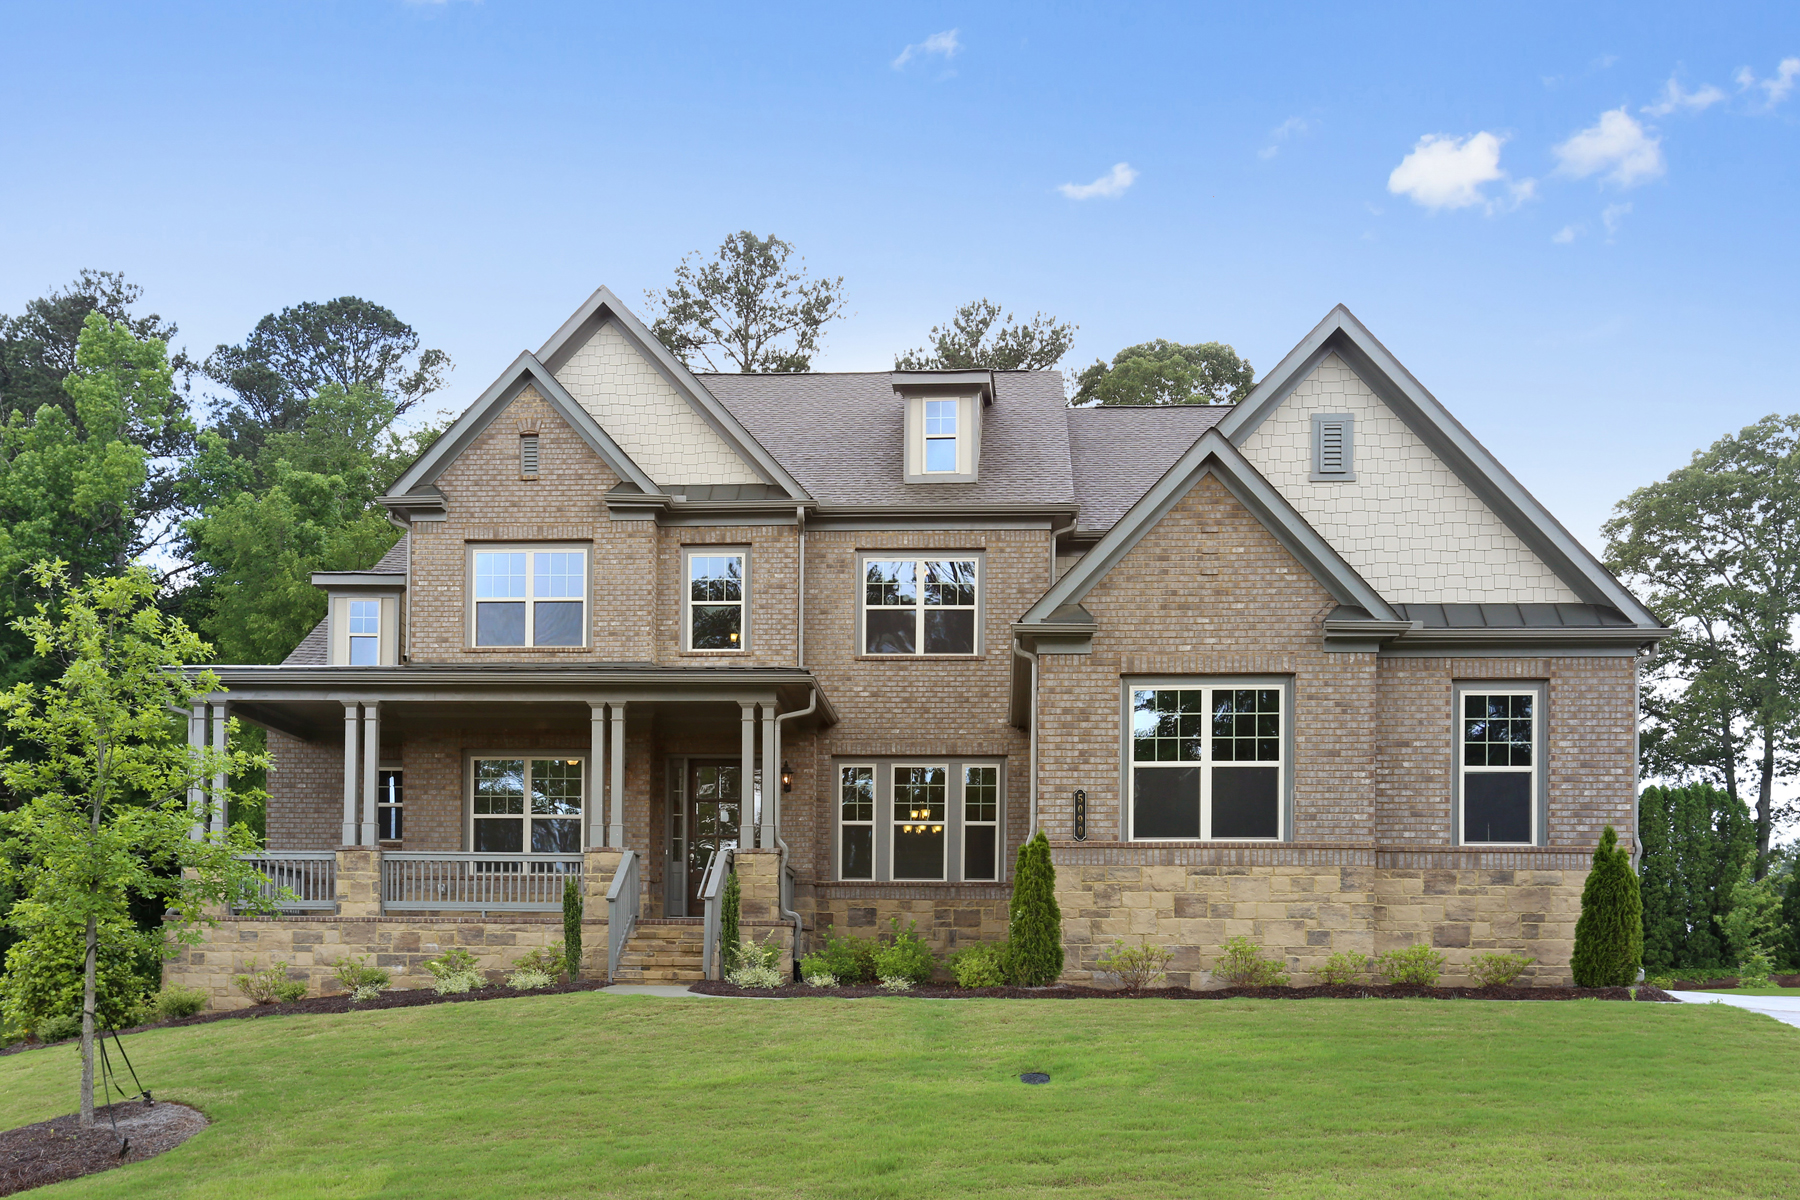 Single Family Home for Sale at New Construction On The Banks Of The Chattahoochee River 5090 Dinant Dr Johns Creek, Georgia 30022 United States